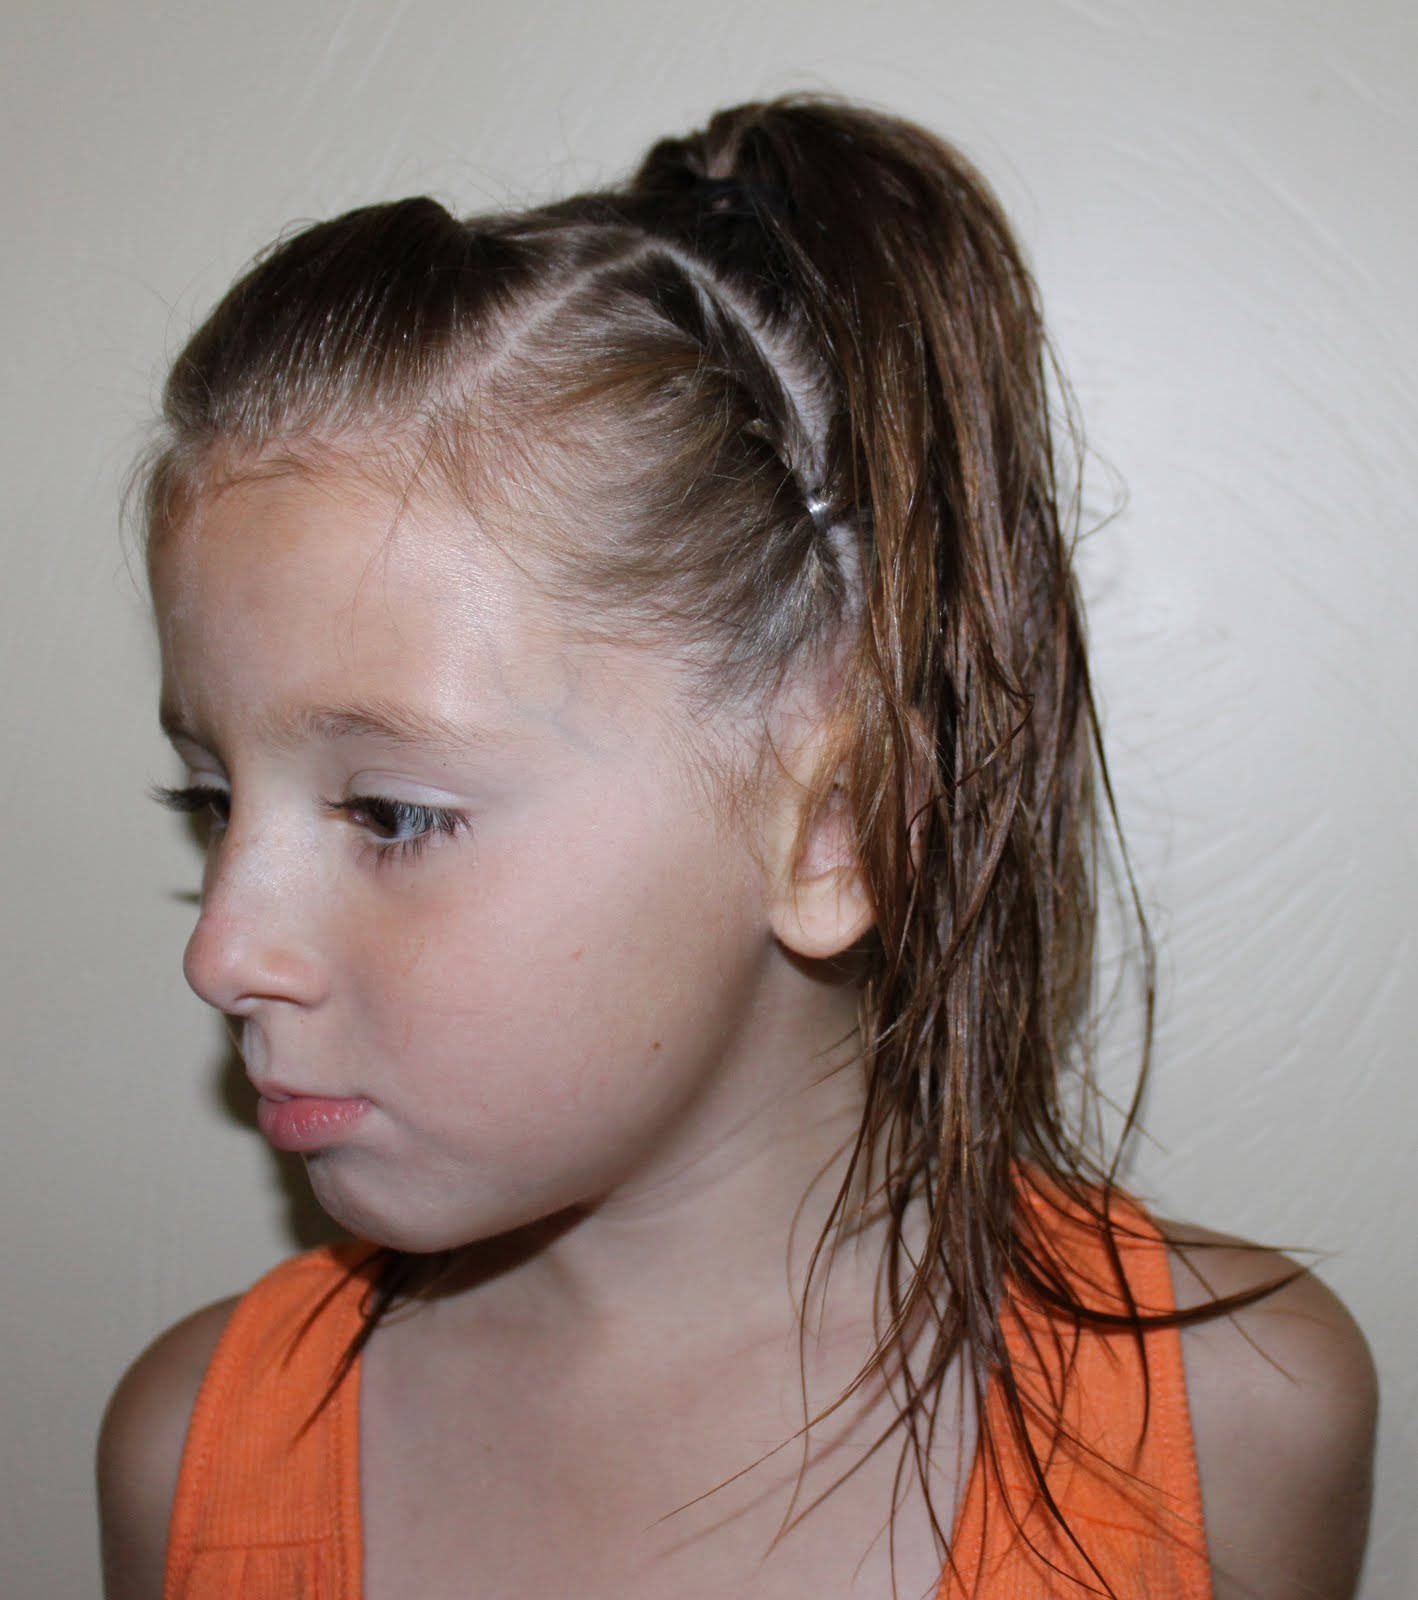 Hairstyles For Girls The Wright Hair Make It Or Break It Hair Lauren S Rolls